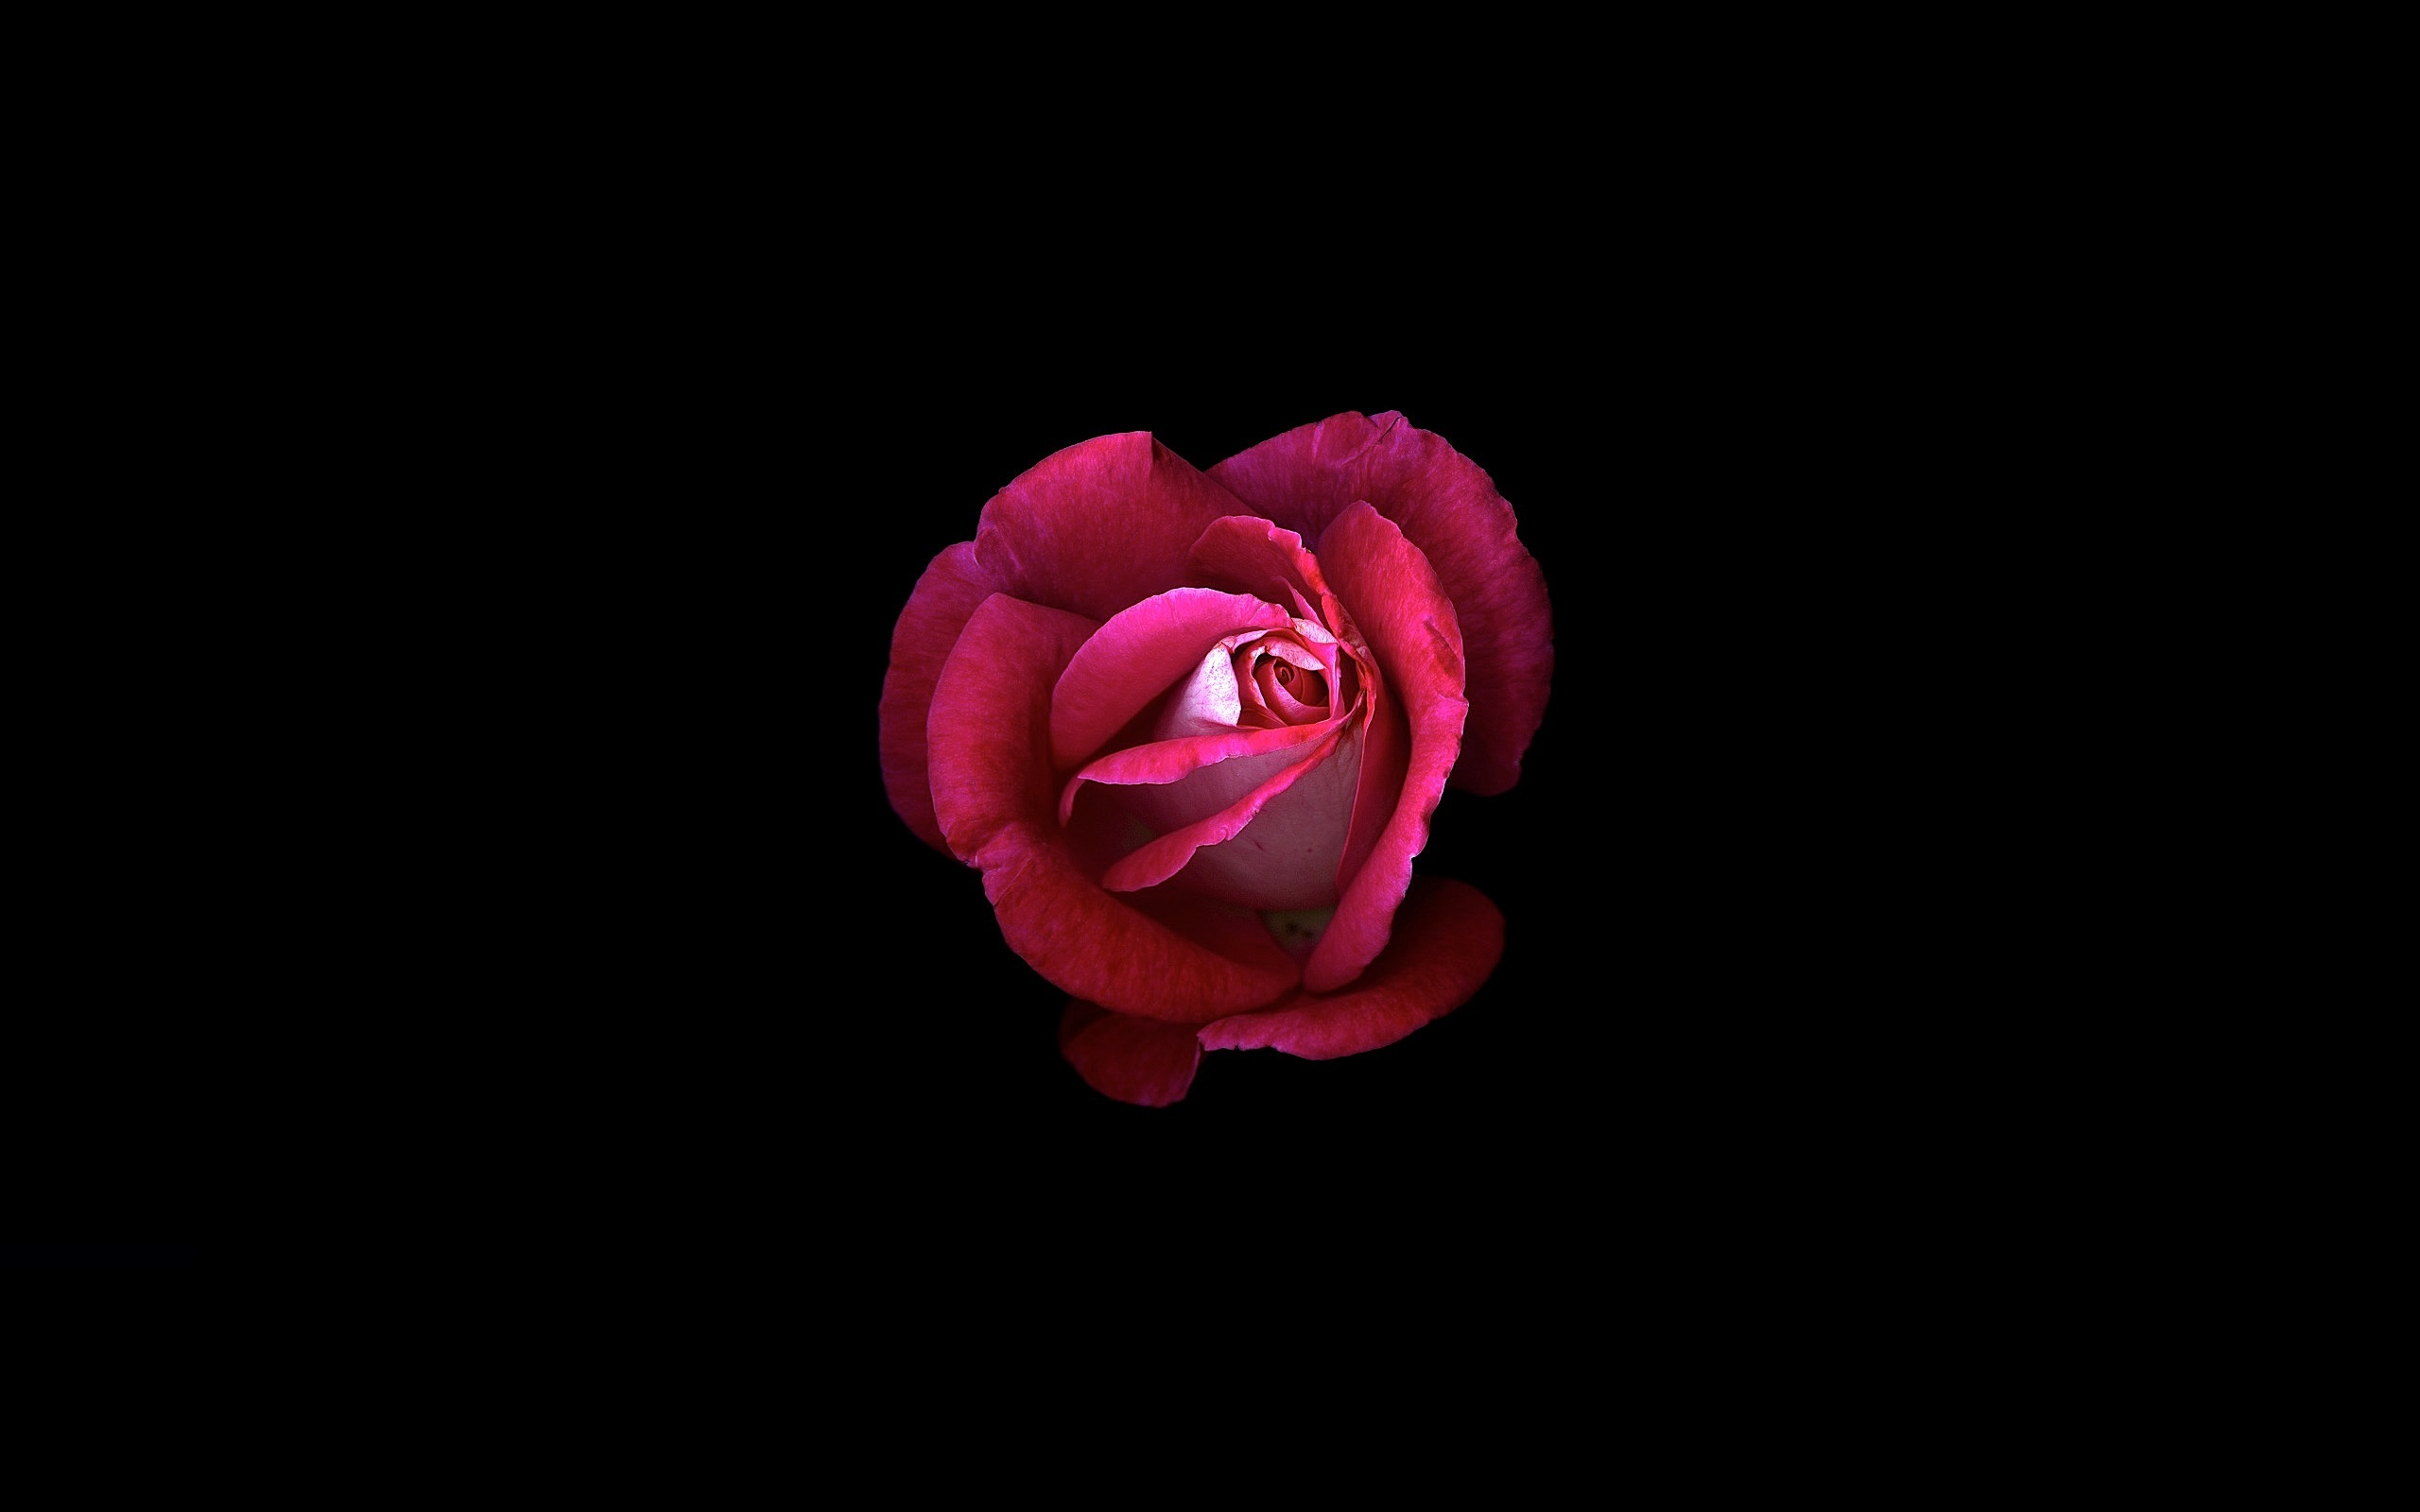 750x1334 Red Rose Dark Oled Iphone 6 Iphone 6s Iphone 7 Hd 4k